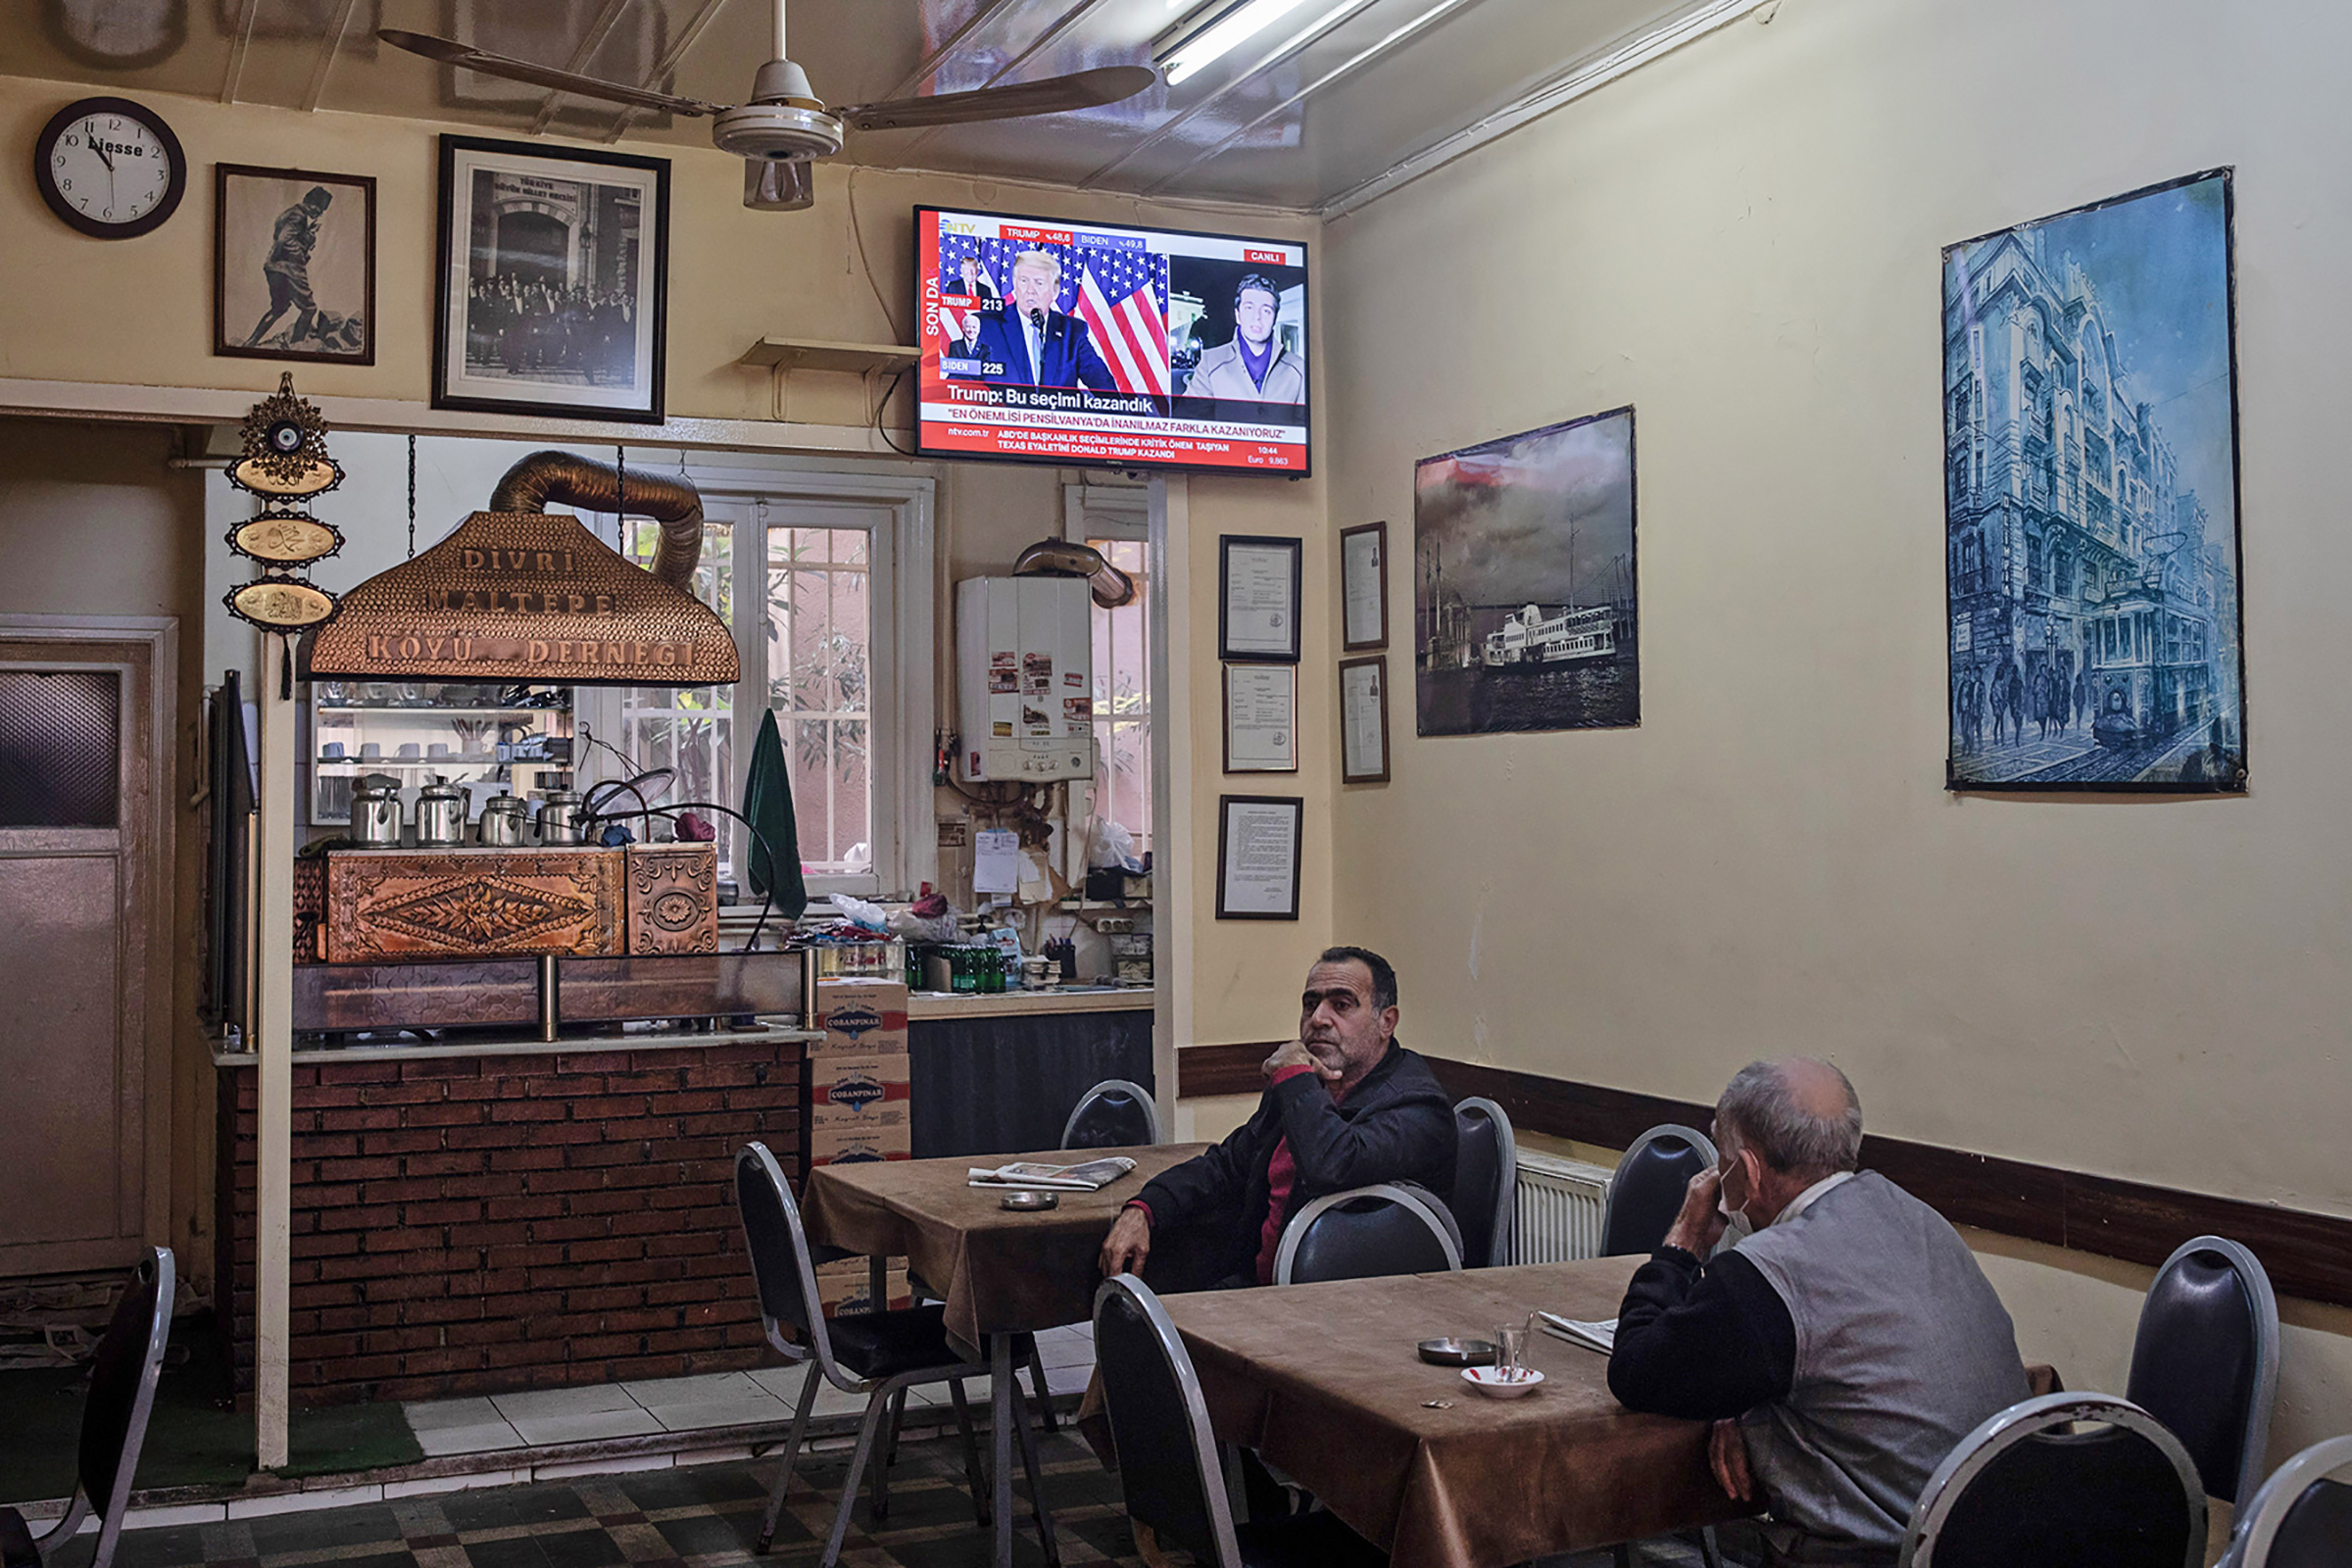 Tea drinkers in Istanbul watch one of President Trump's press conferences